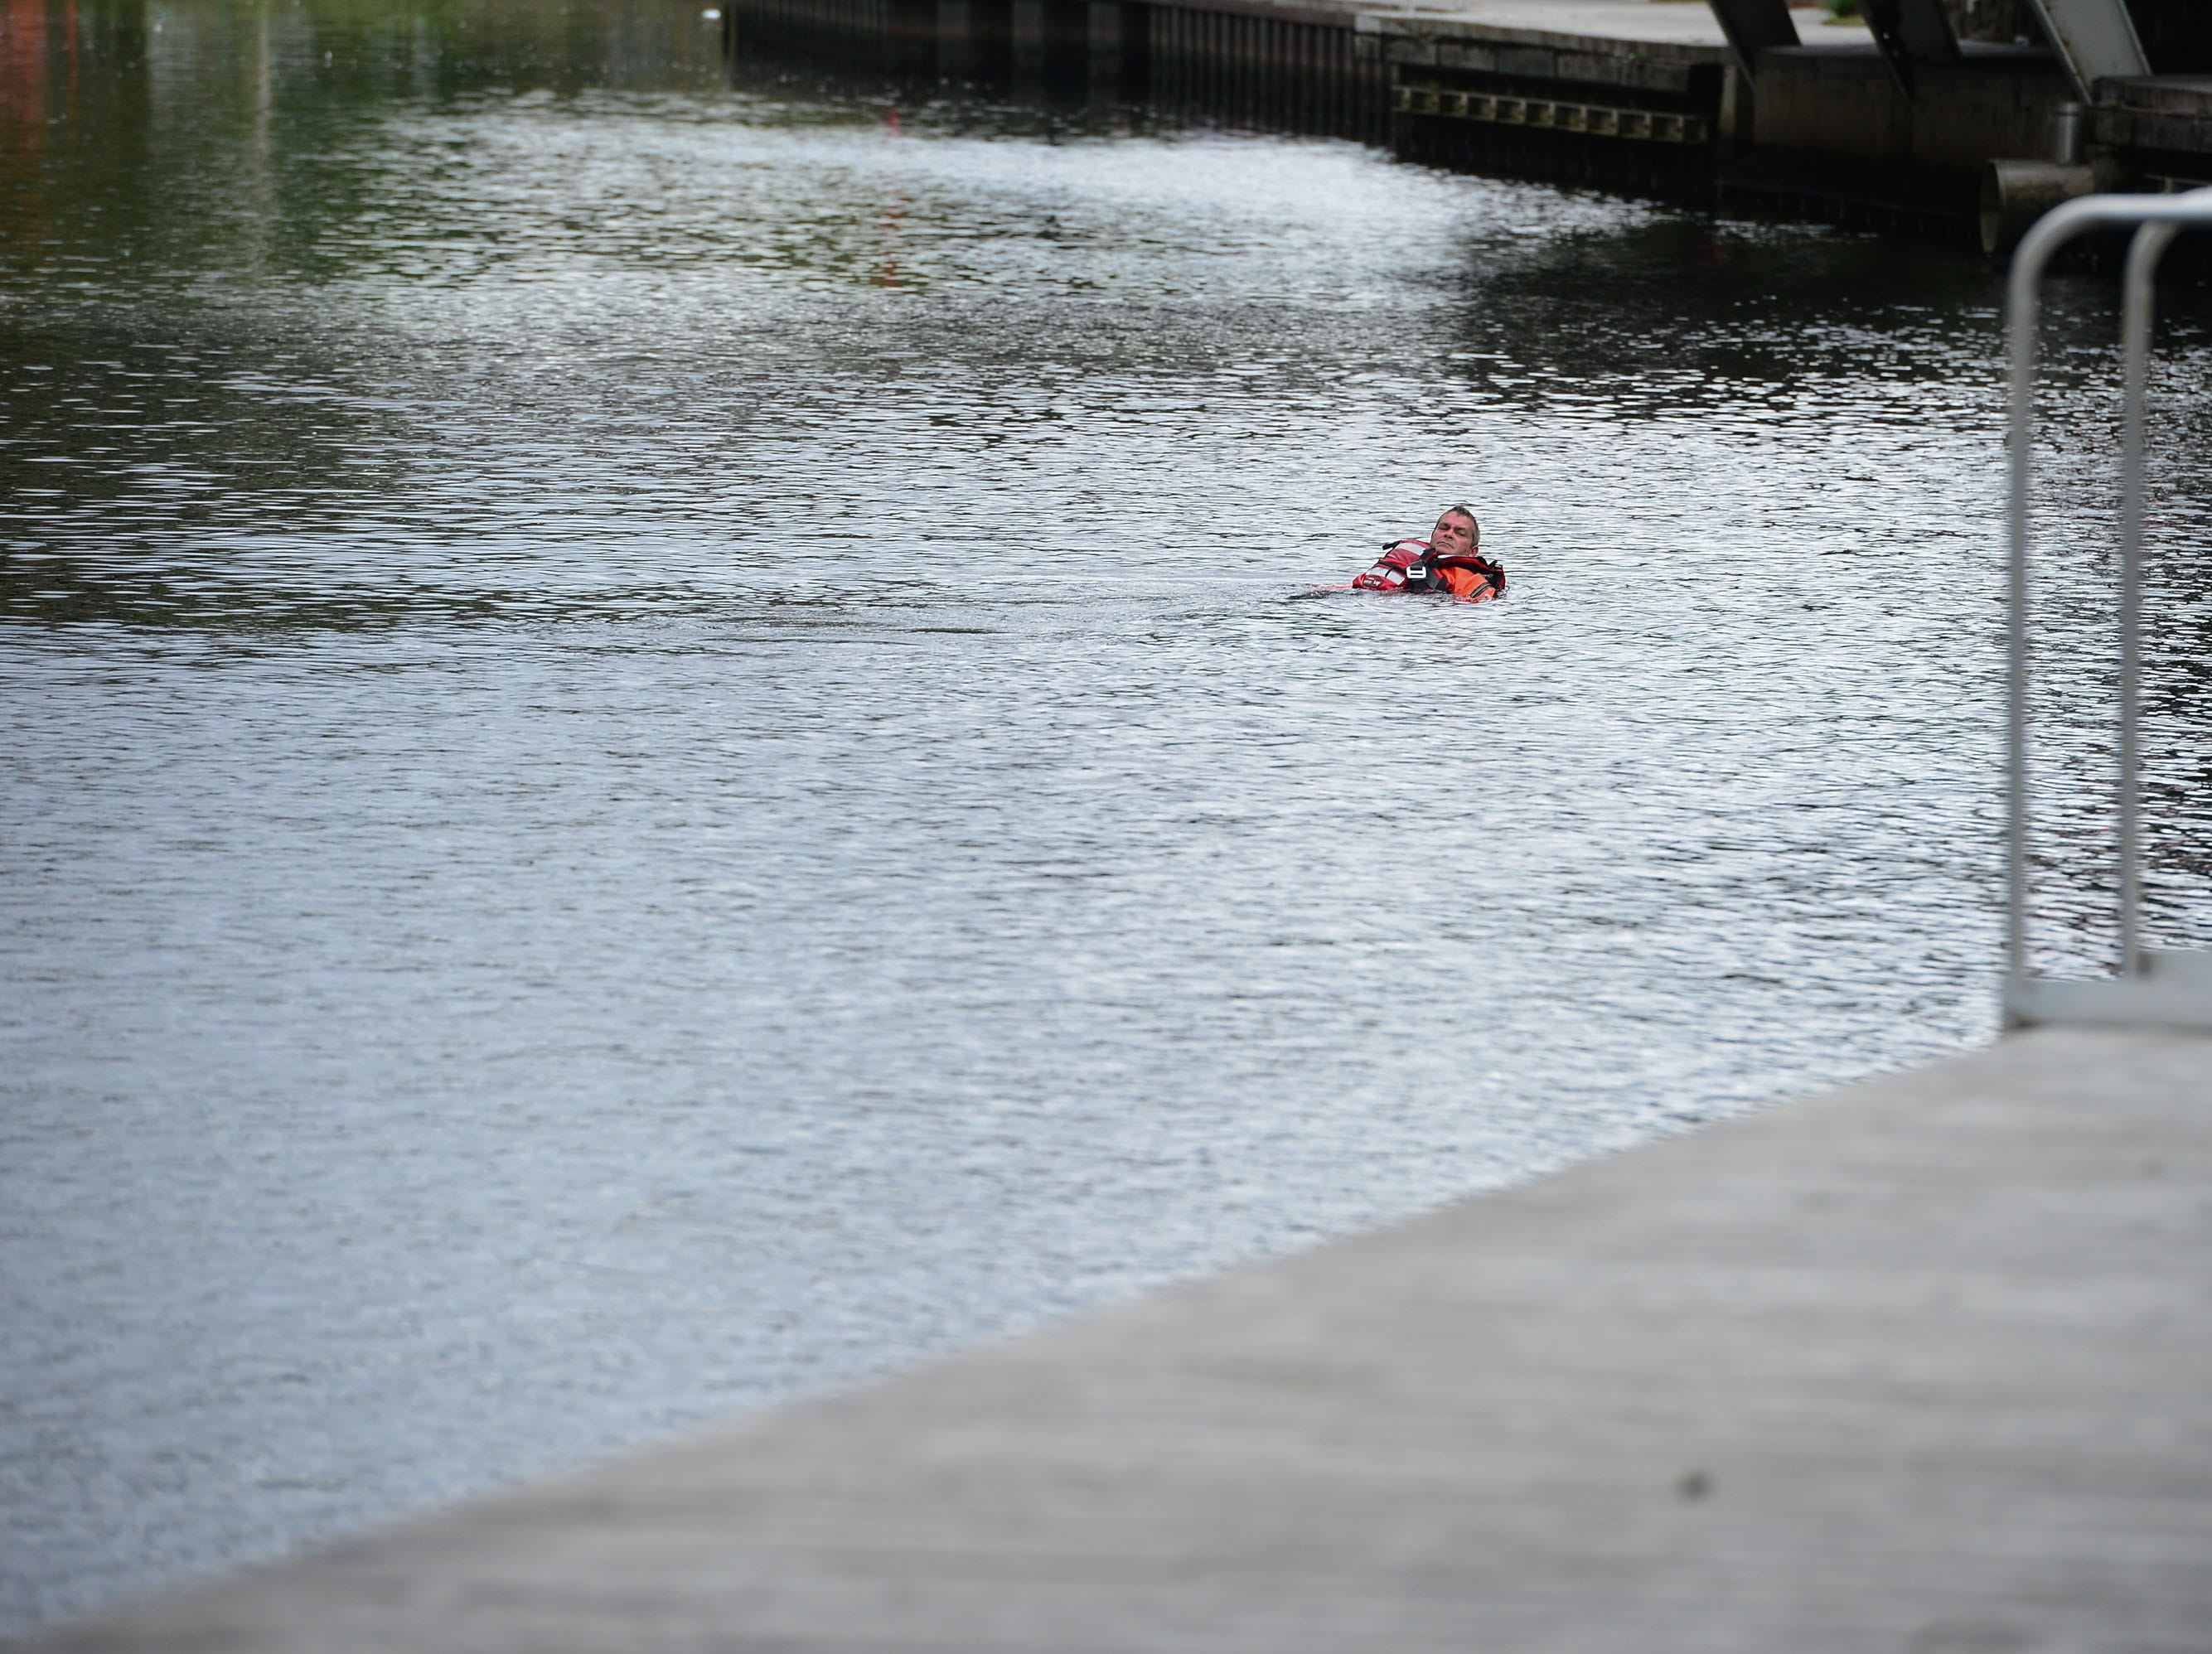 A Salisbury Fire Department diver swims back to shore after a body was found in the Wicomico River near South Division Street Bridge around 12:30 pm.